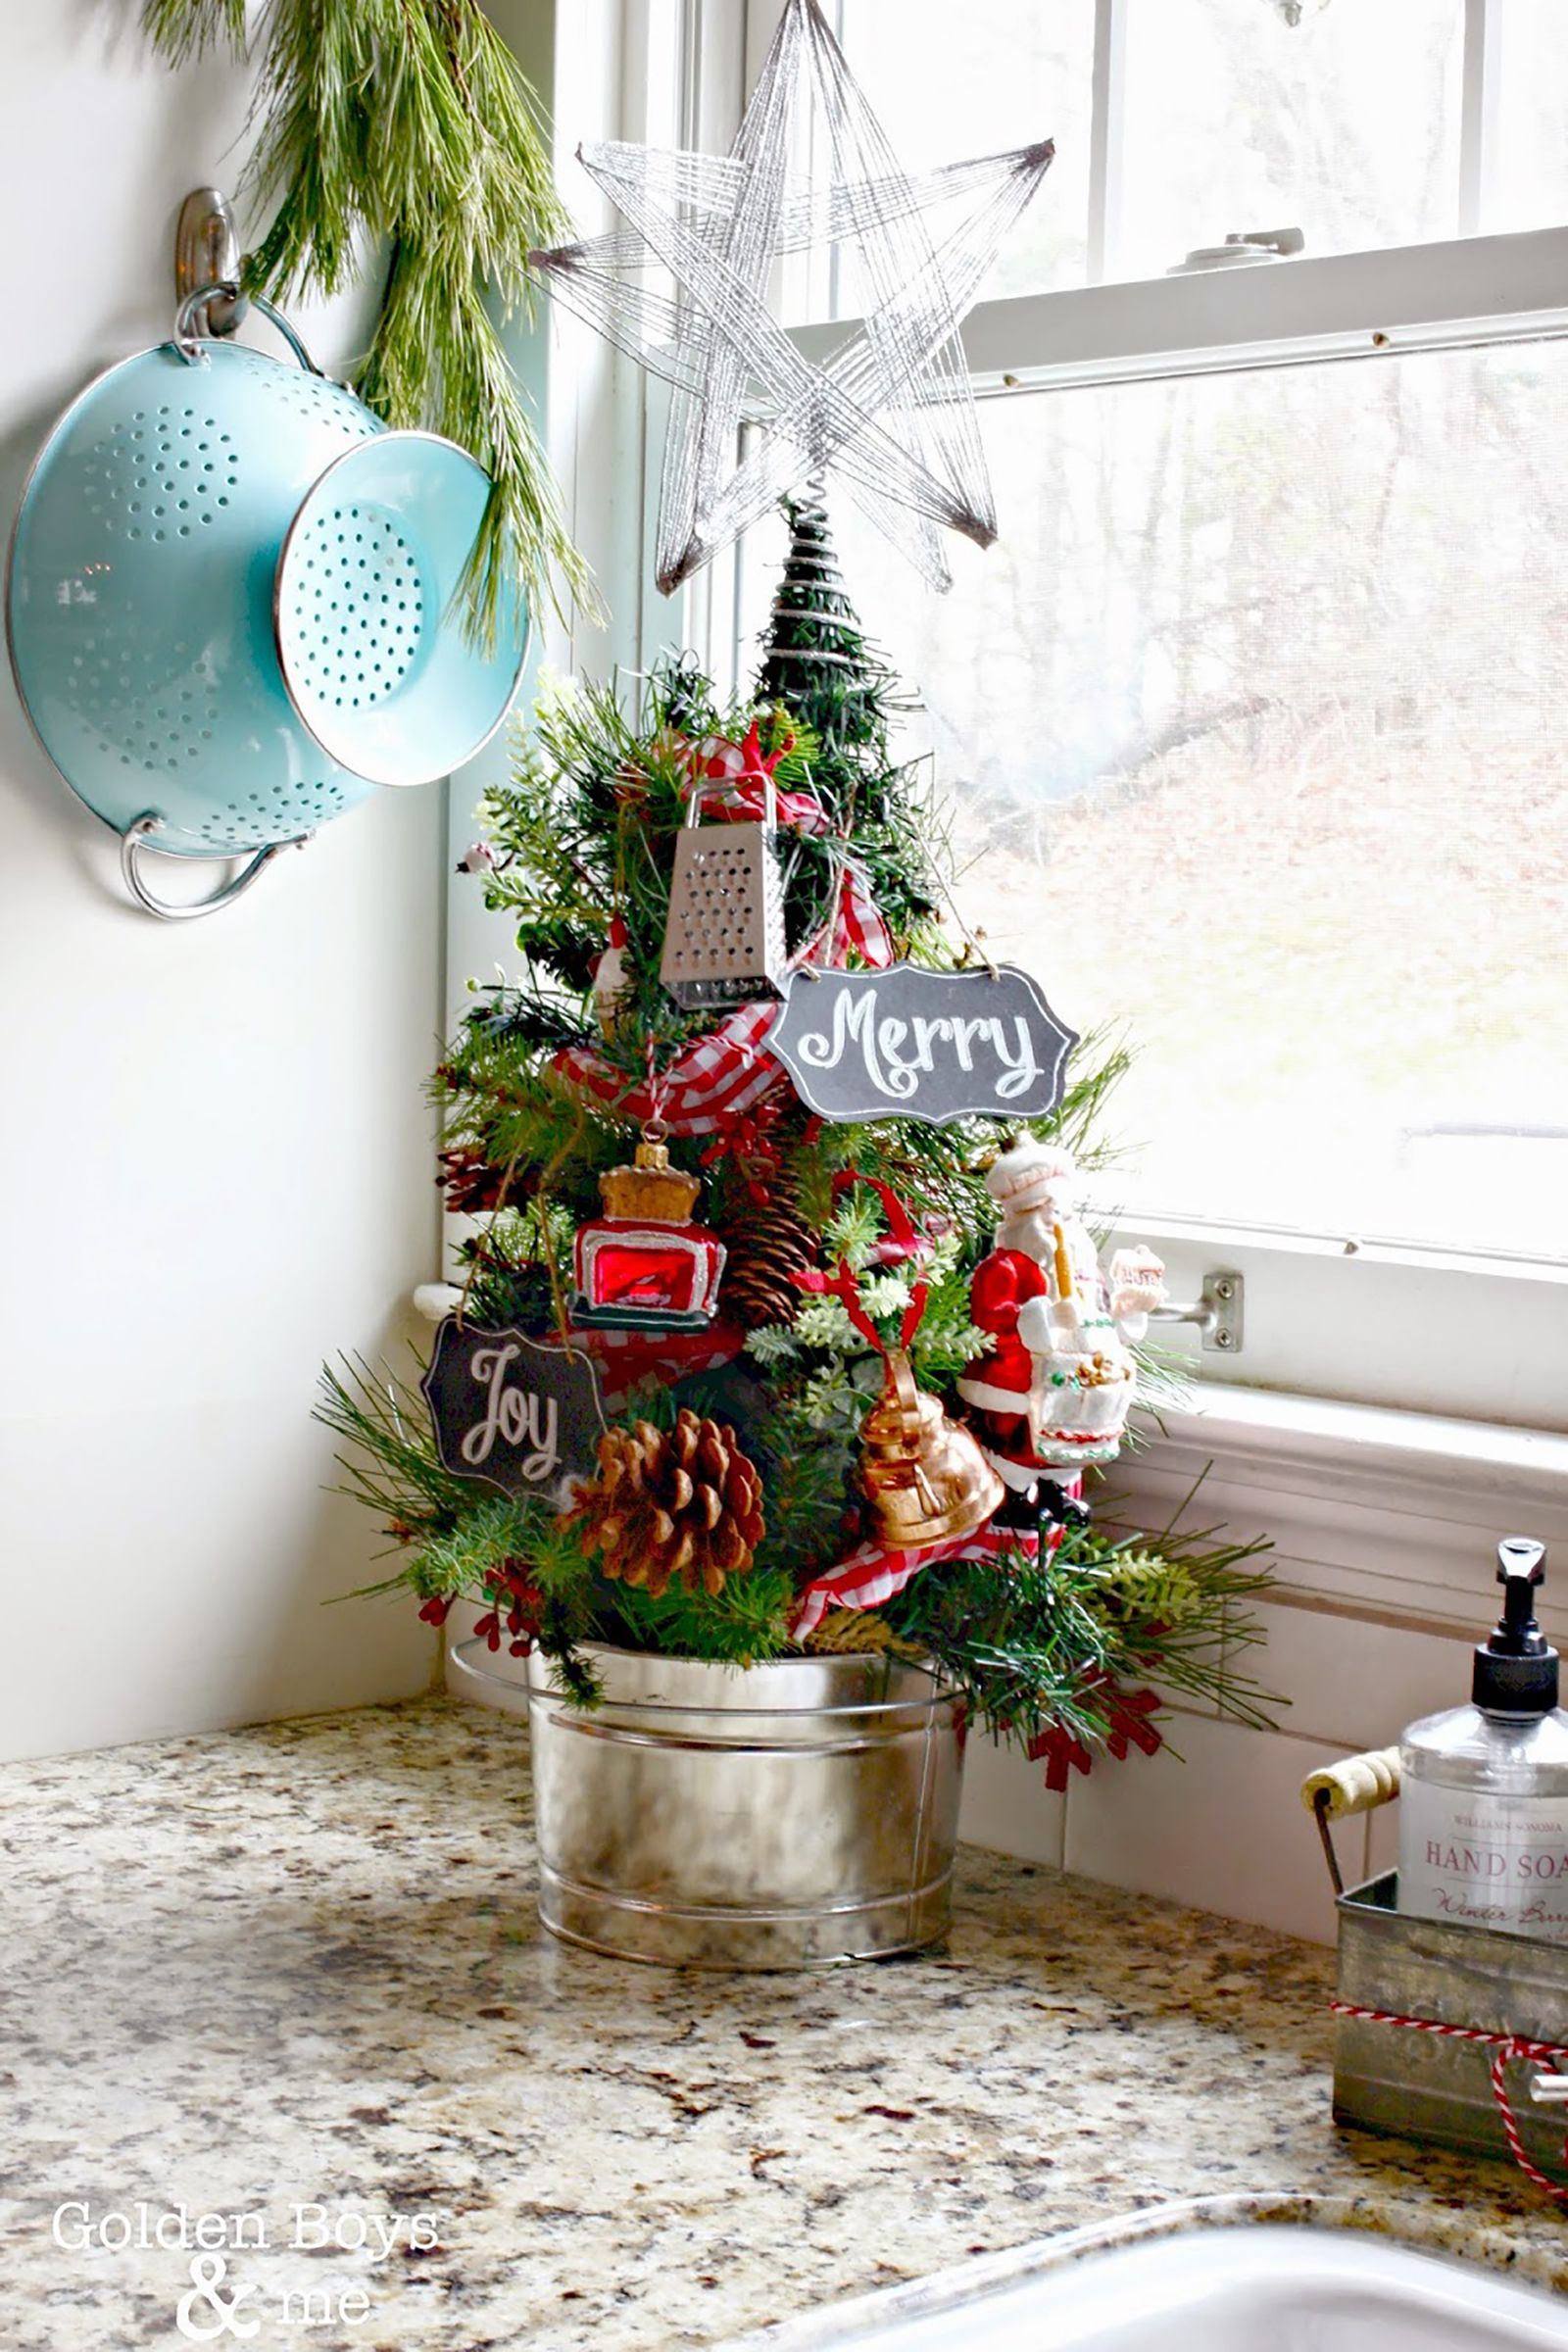 30+ Best Small Christmas Trees - Ideas for Decorating Mini Christmas Trees